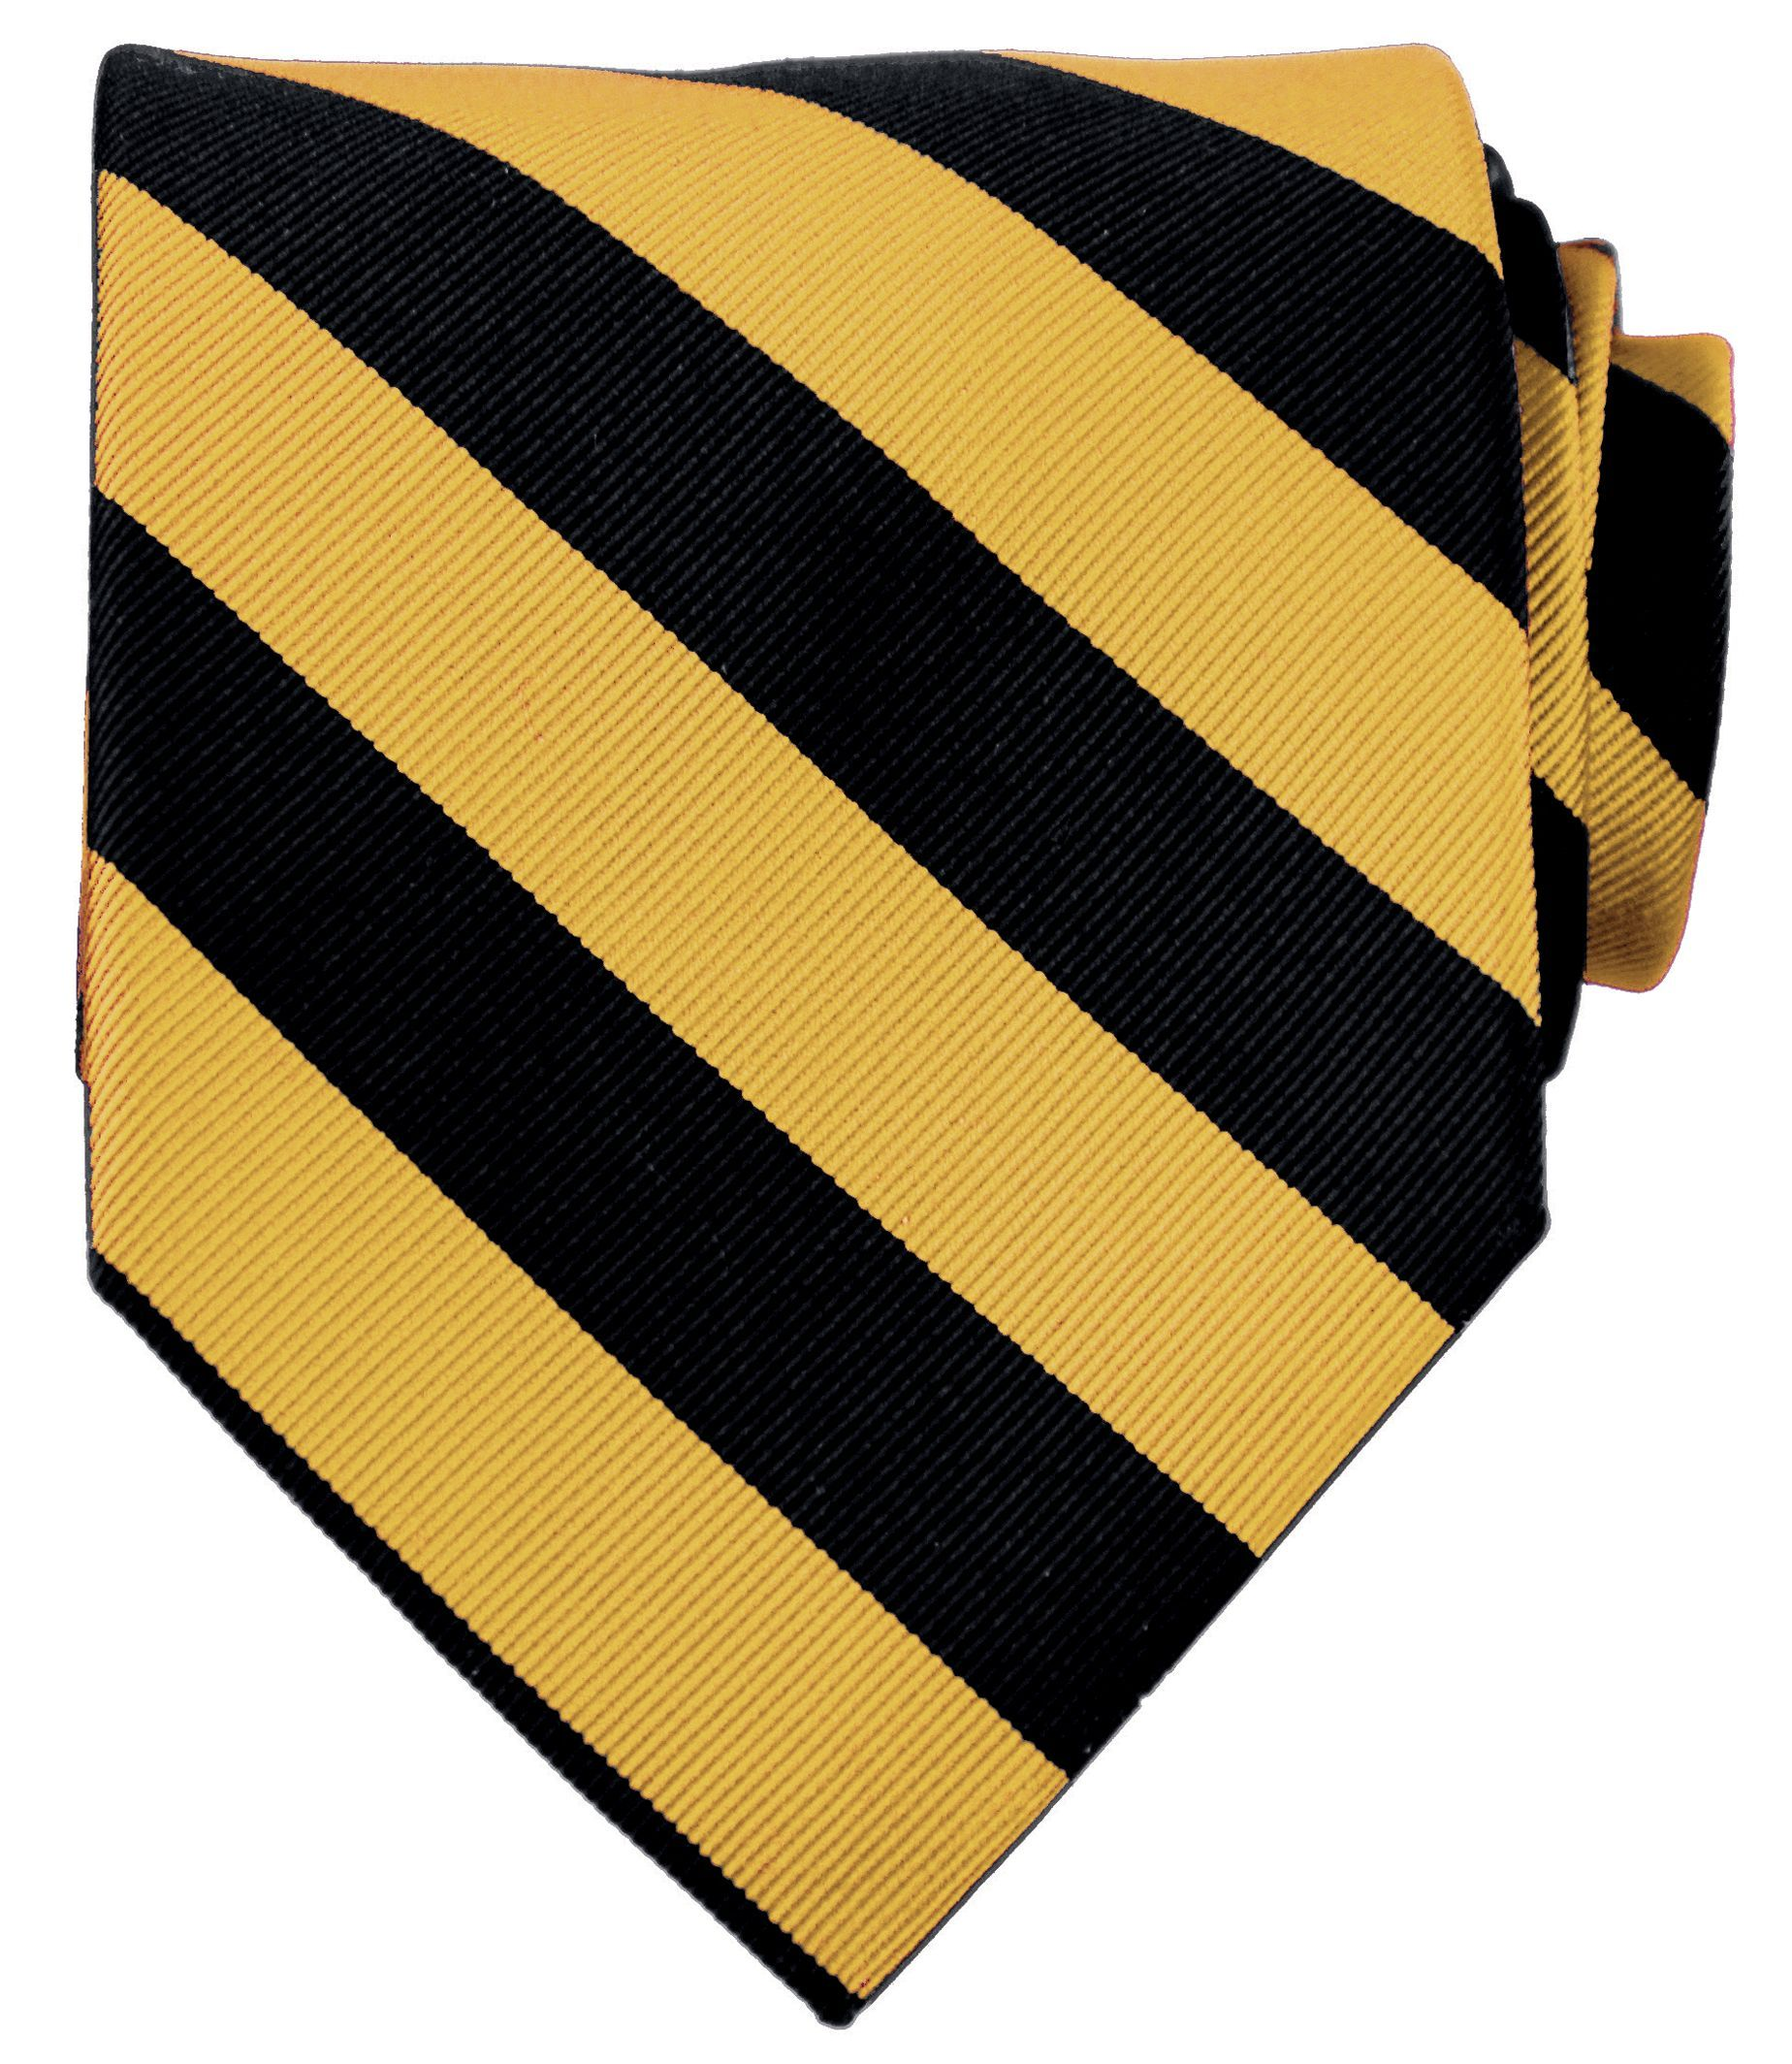 Collegiate Tie Black Gold For Fans Of The The Virginia